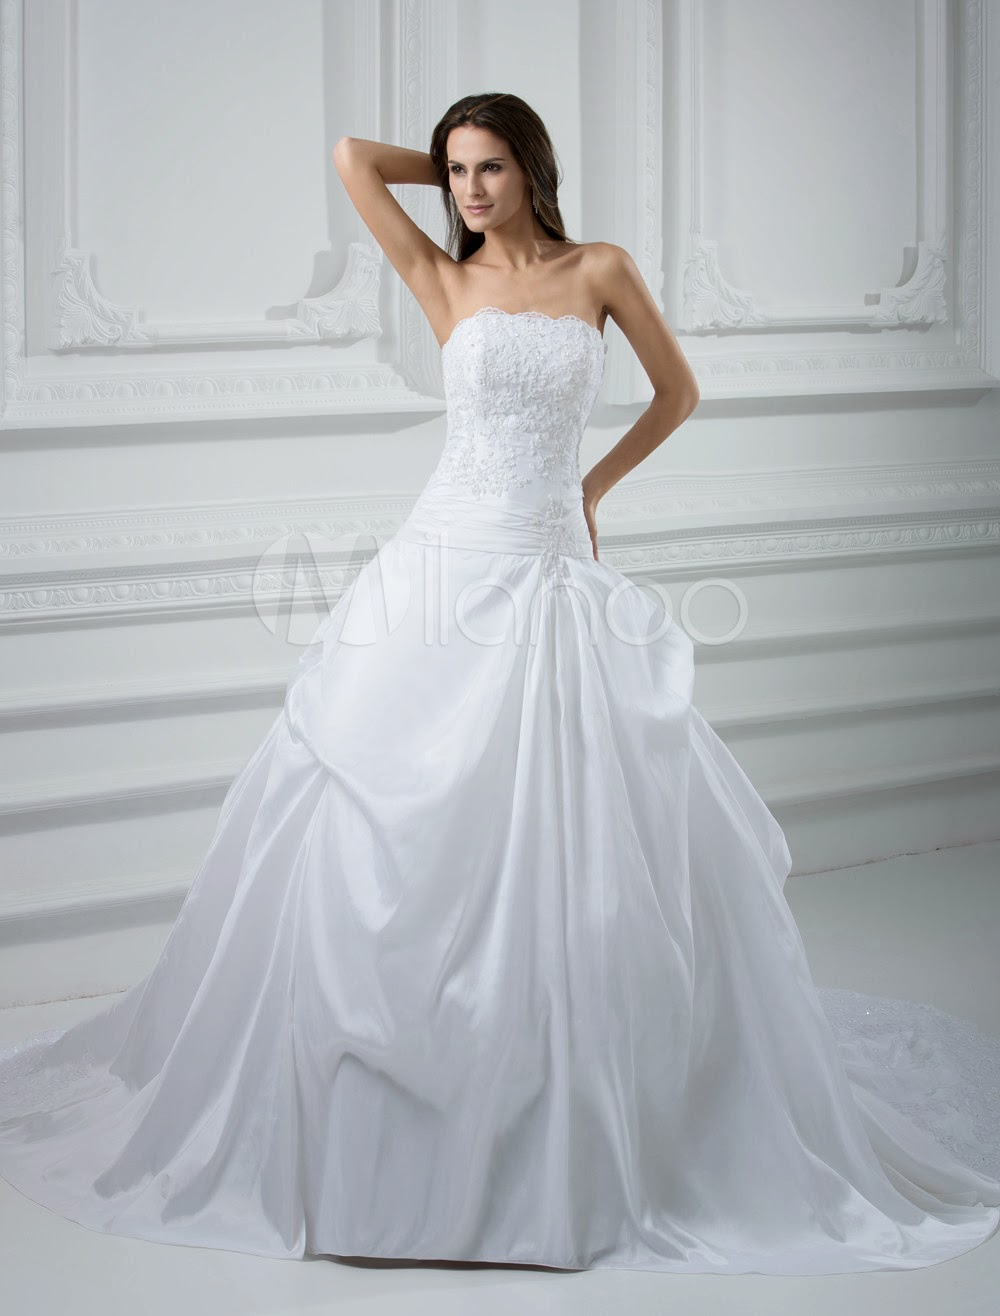 China Wholesale Dresses - Gorgeous A-line Strapless Beading Pongee Wedding Dress